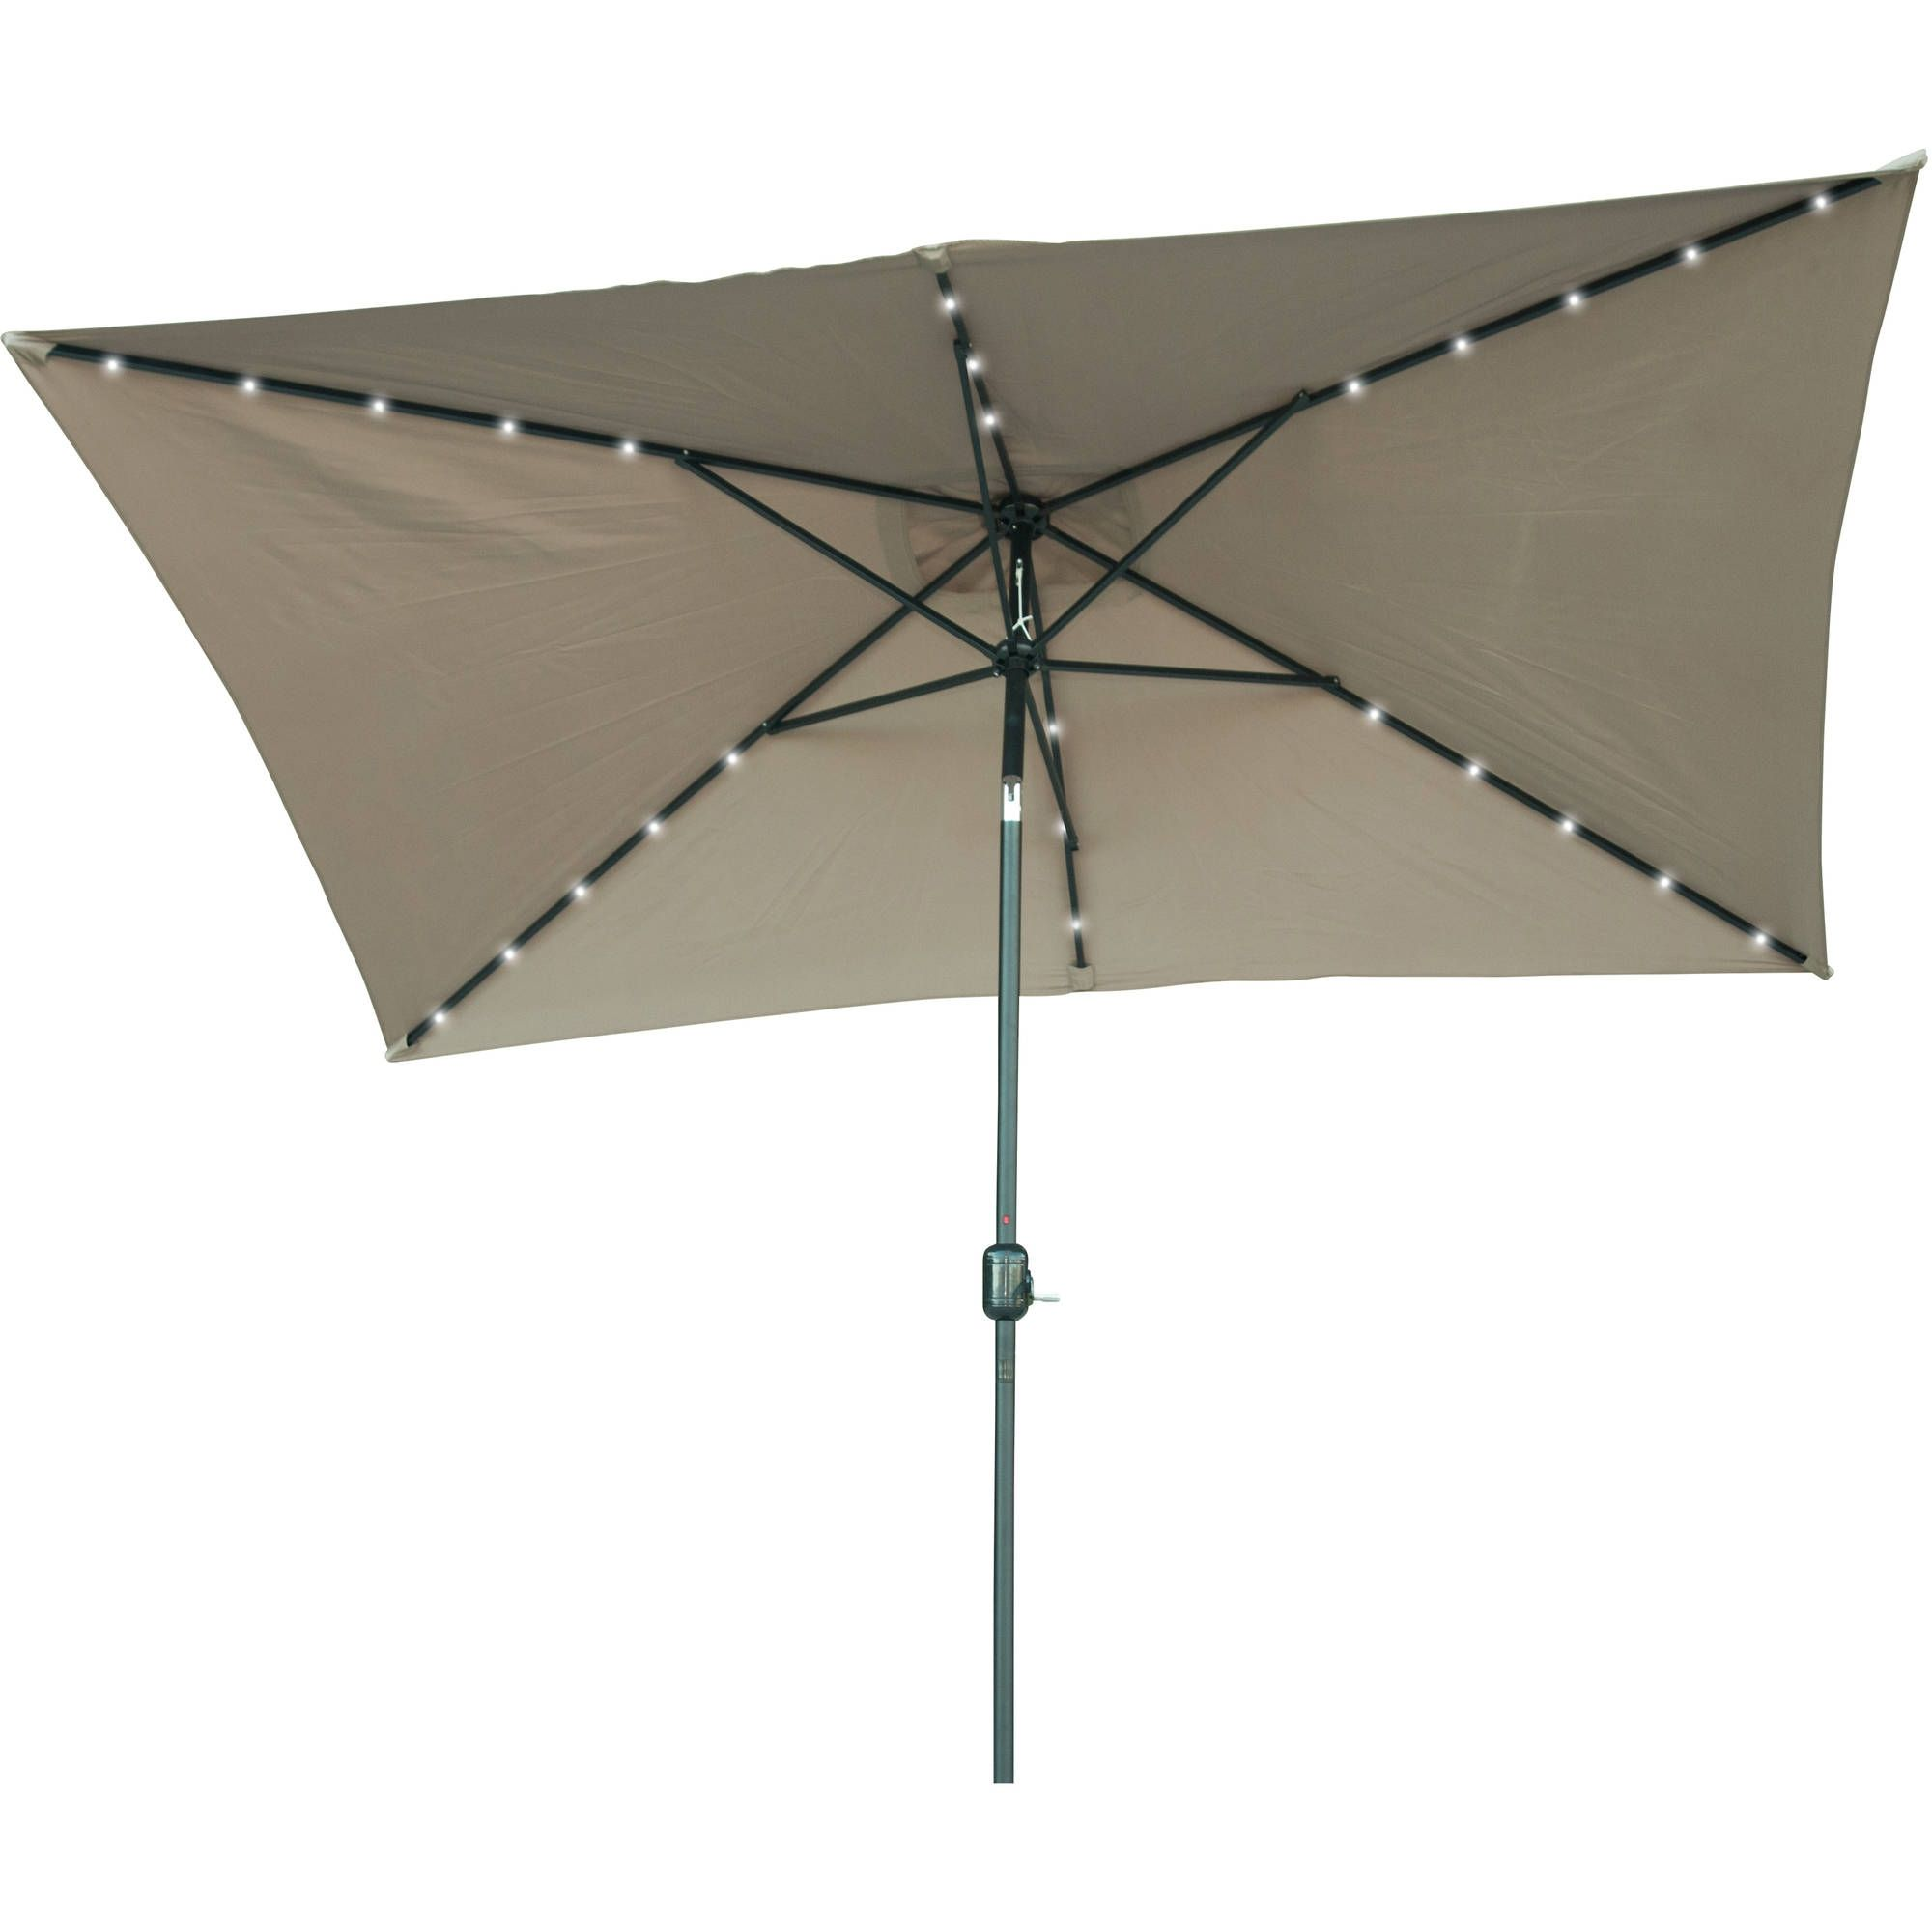 Solar Lights For Patio Umbrellas Cool Rectangular Patio Umbrella With Solar Lights  Patio Decor Design Ideas